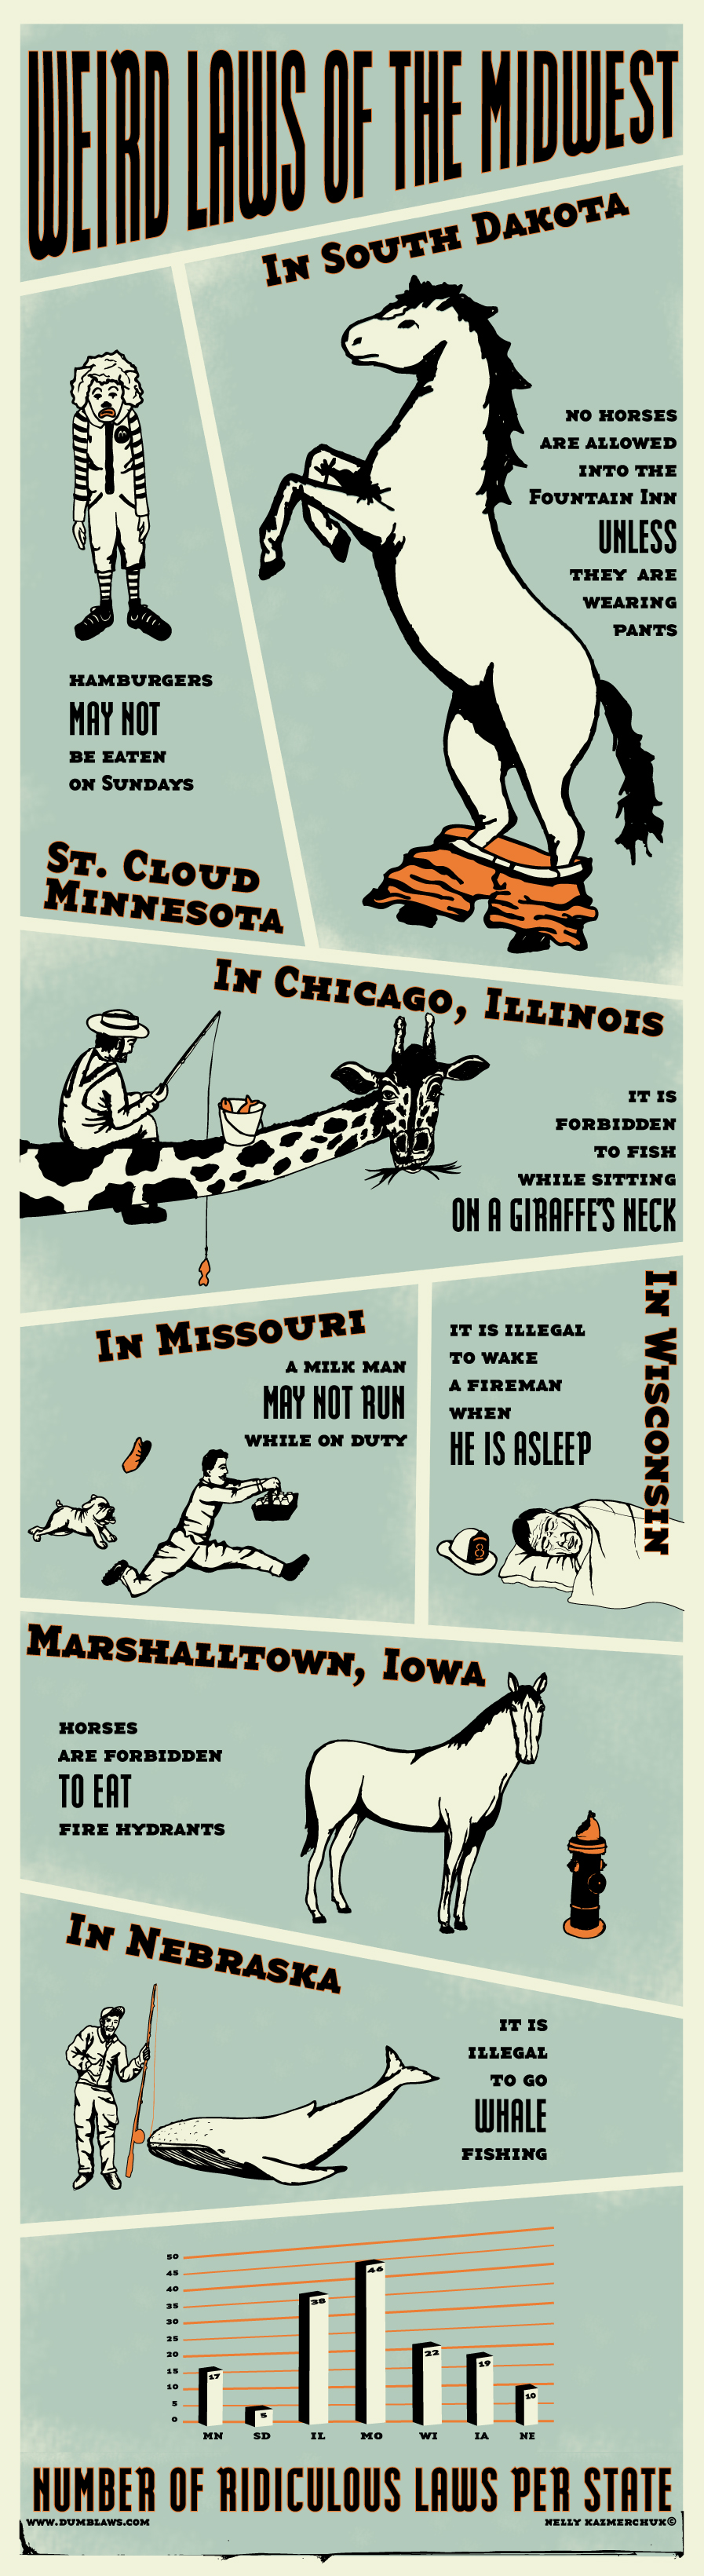 Bizarre Laws of the Midwest